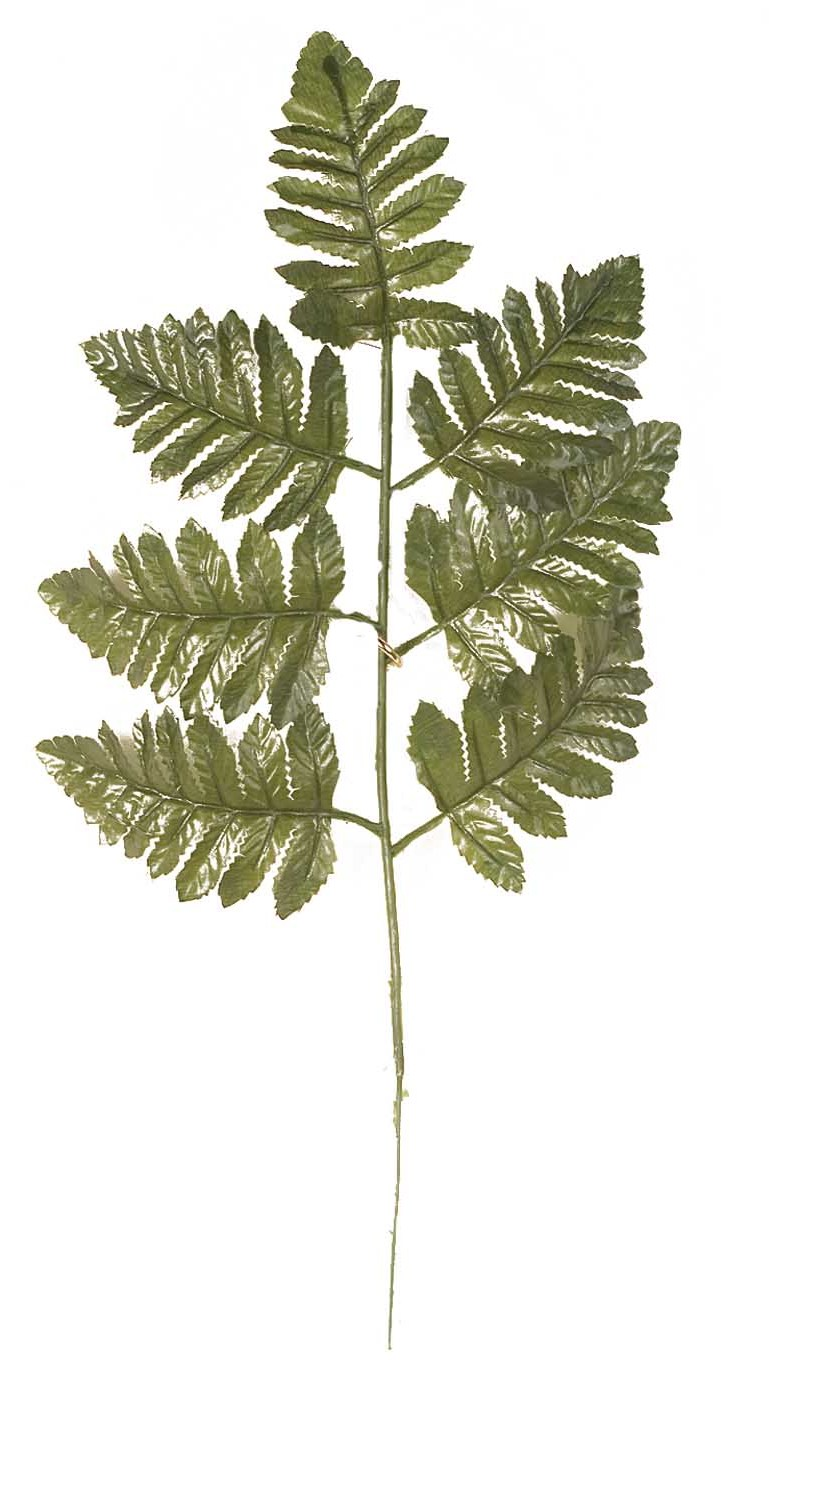 "SBG6112 - 17"" Tall Dark Leather Fern Stem ""dozen"" $2.85 a dozen SBG6112"